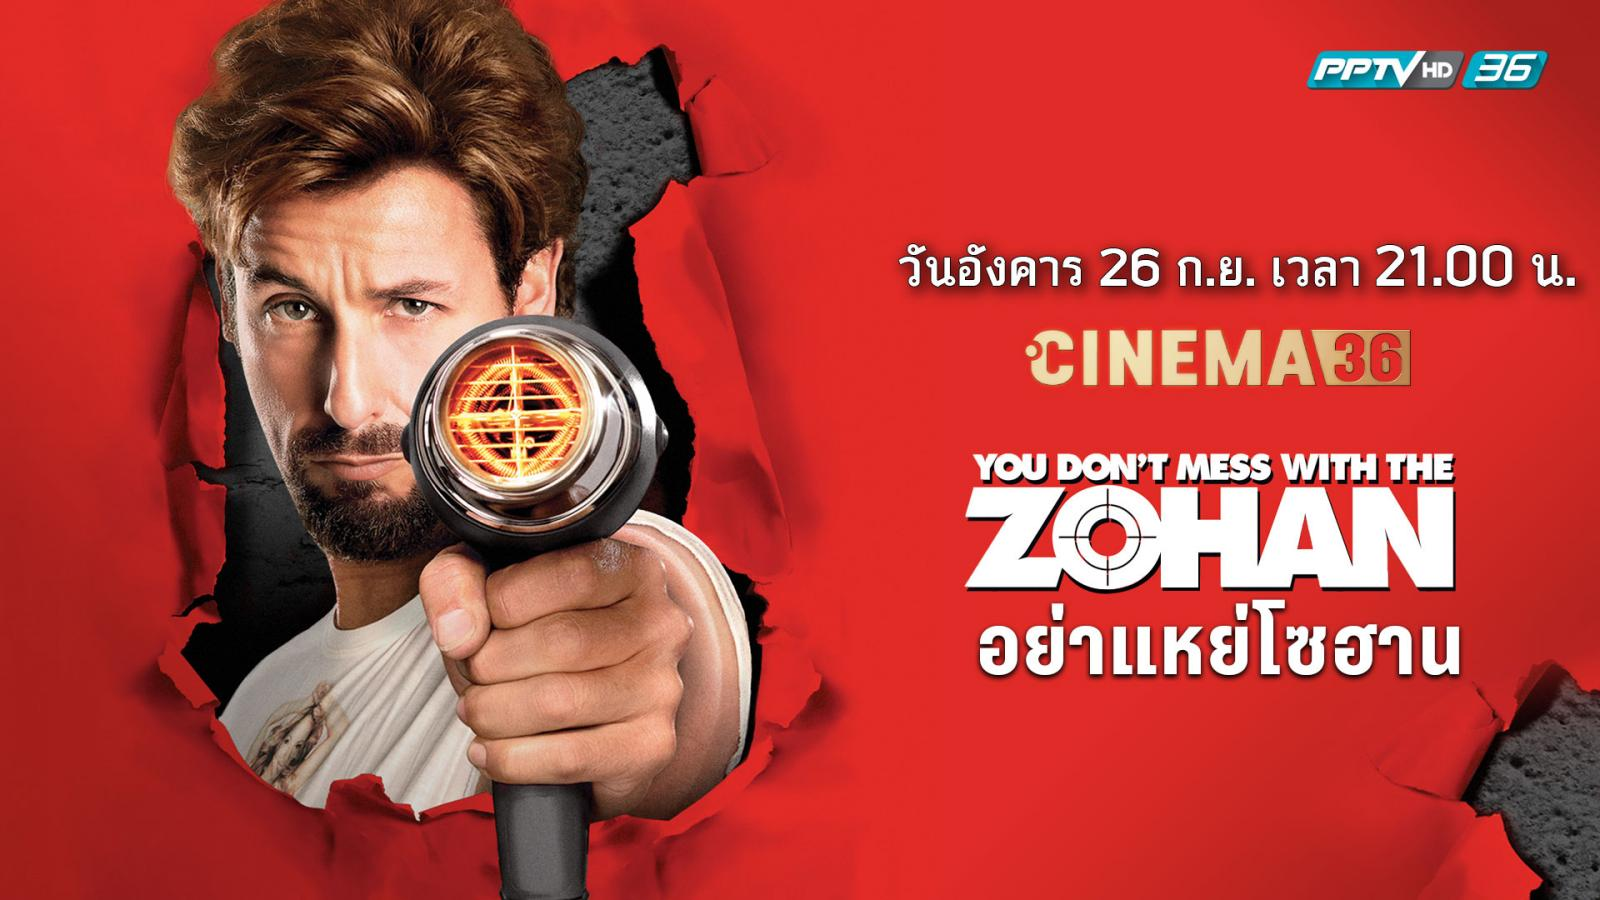 You Don't Mess with the Zohan อย่าแหย่โซฮาน